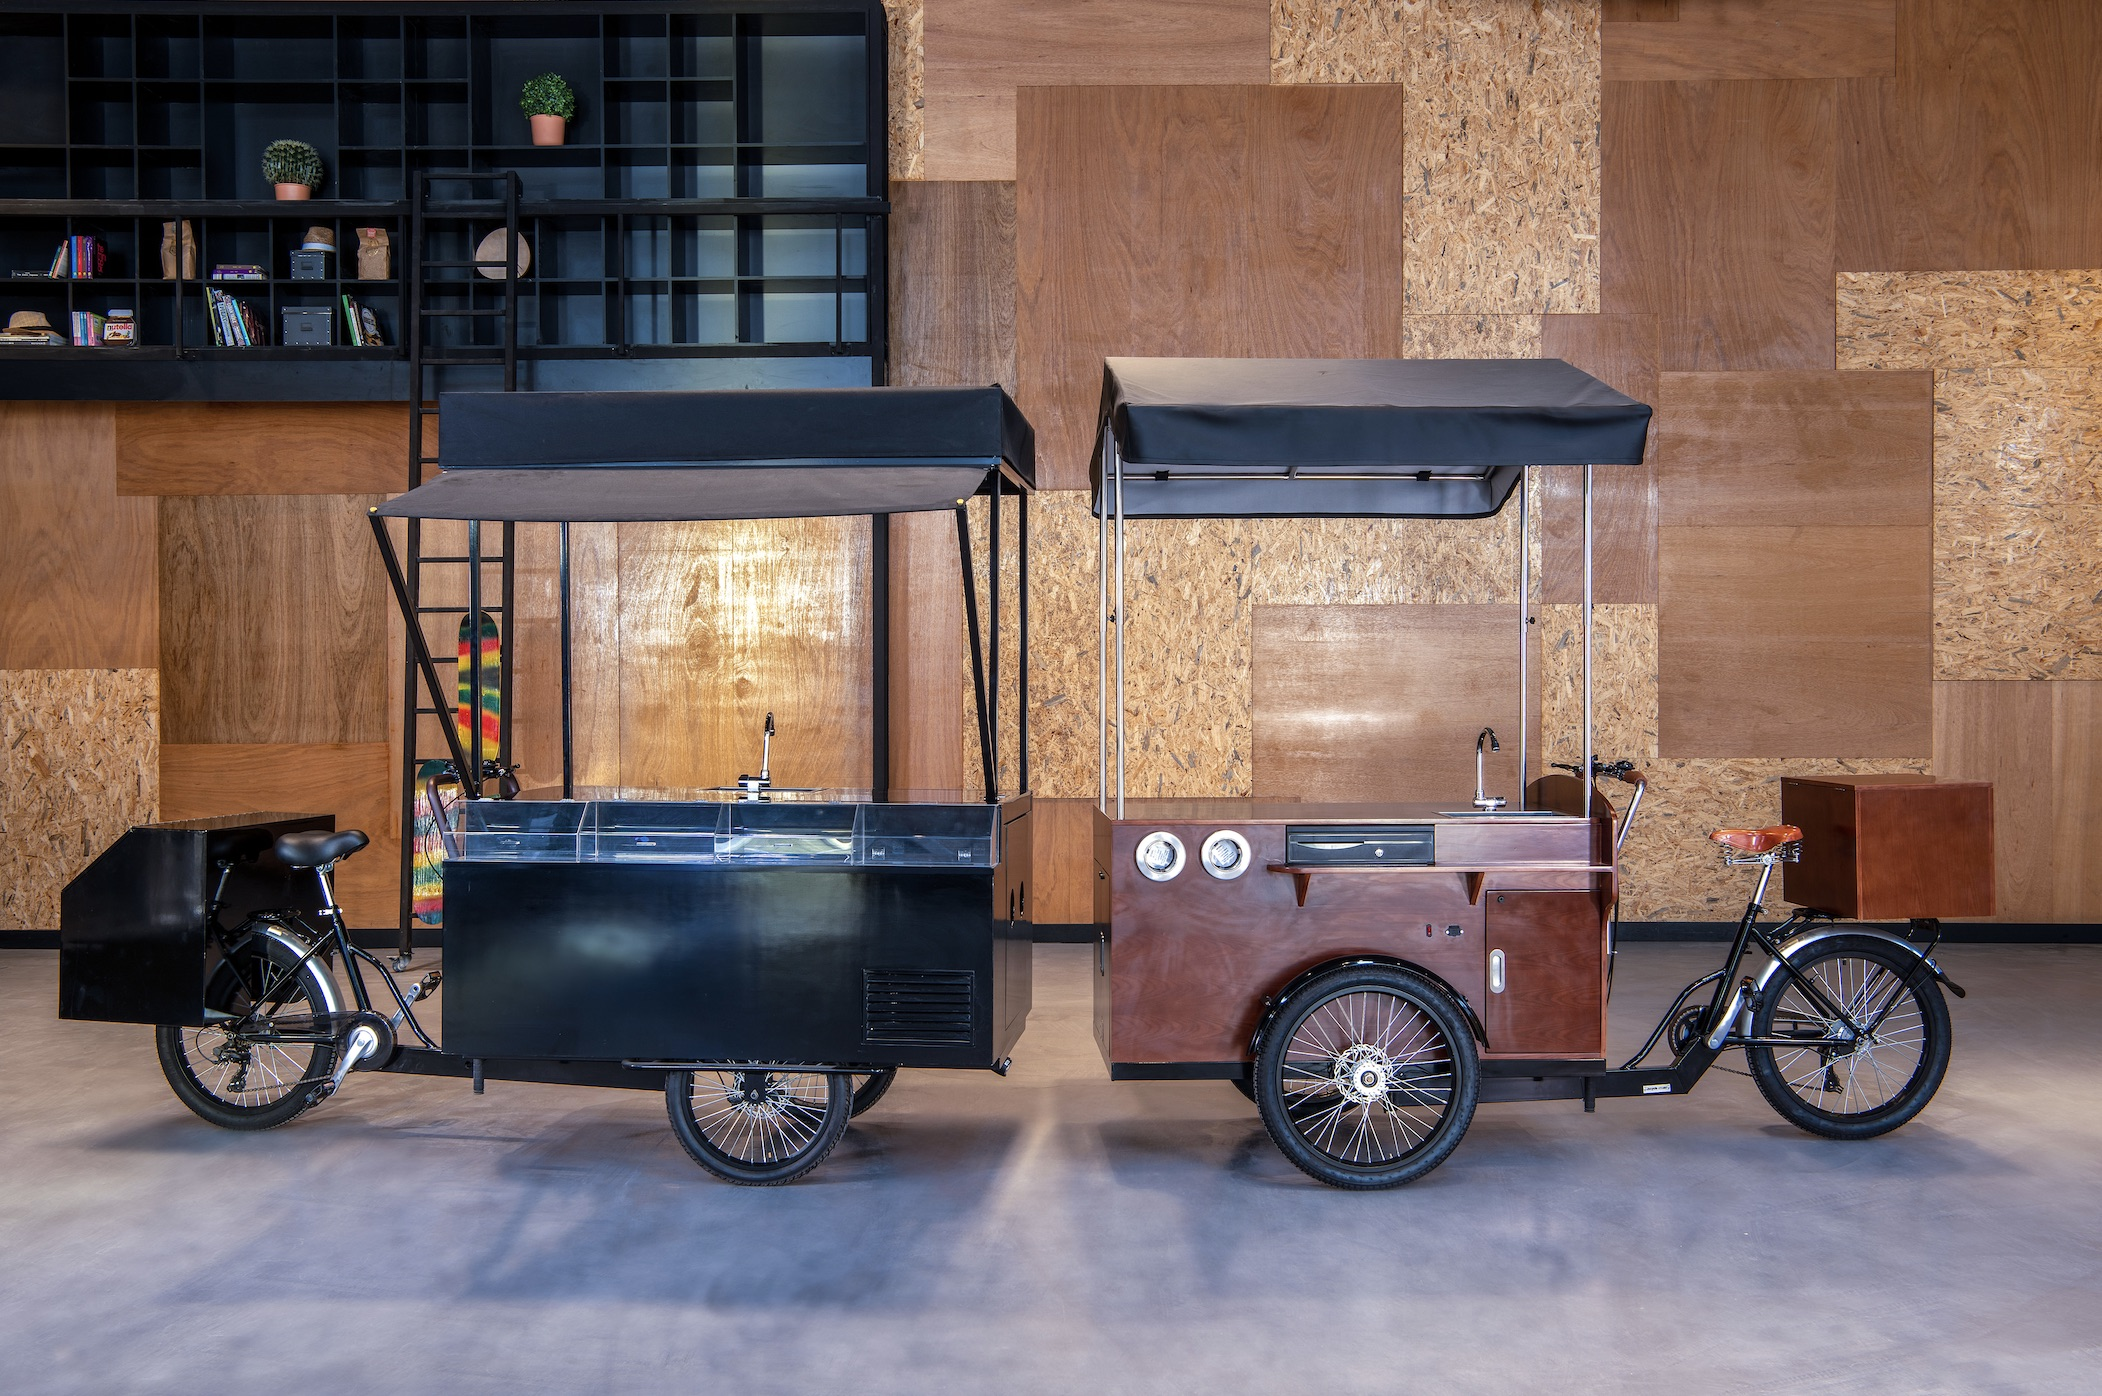 Bespoke Trailers Transforms Business Ideas into Mobile Units